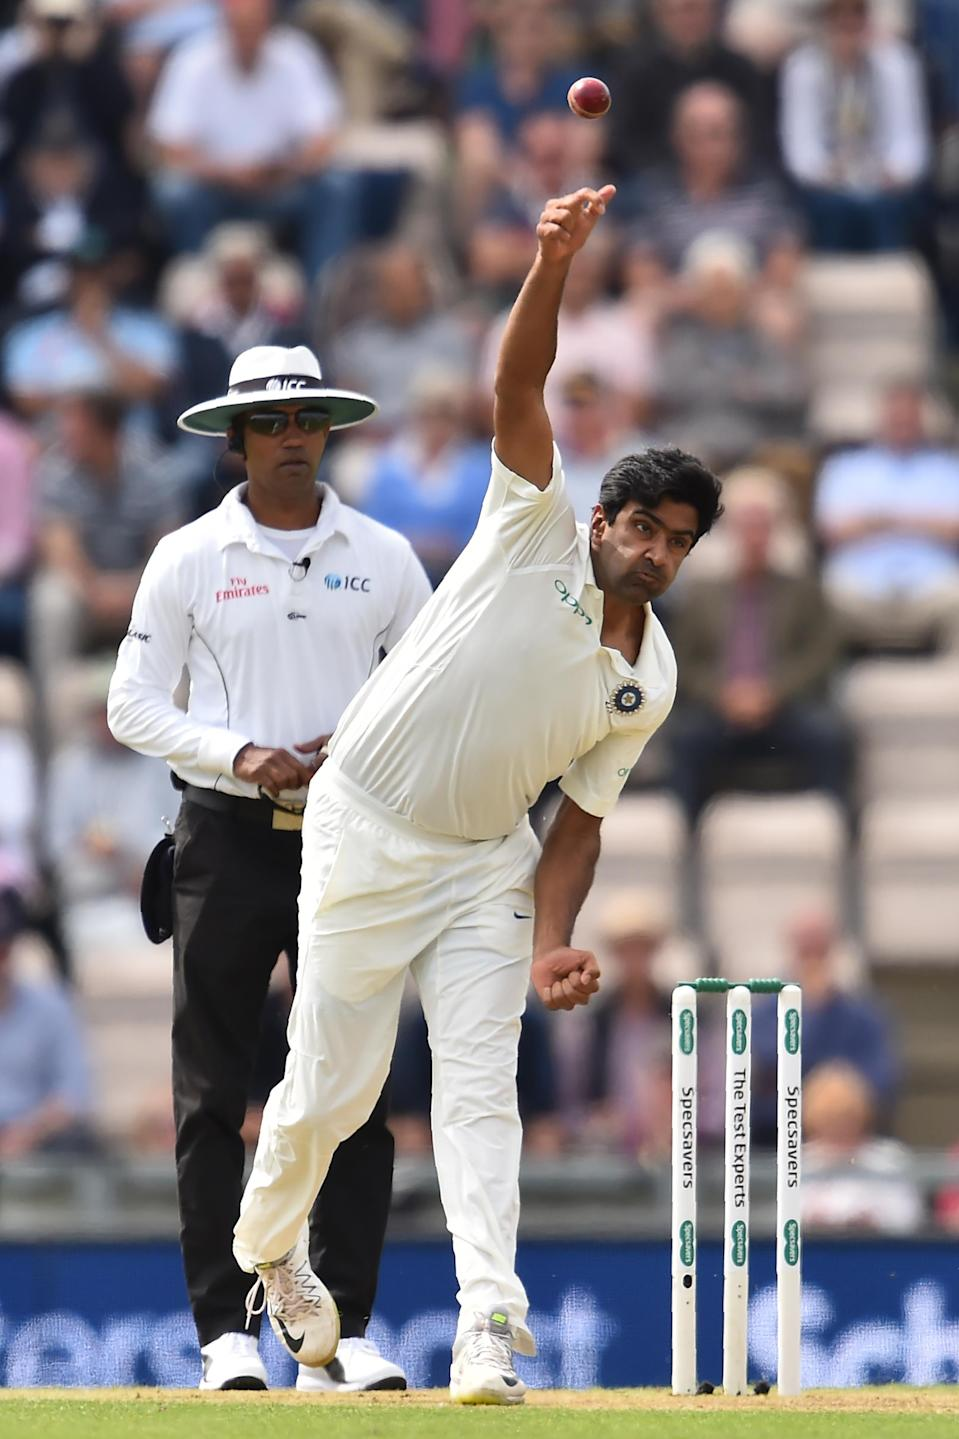 <p>India's frontline spinner Ravichandran Ashwin was outbowled by England's part-time tweaker Moeen Ali. On a pitch with turn and bounce, Ashwin looked unfit and out of rhythm and, arguably, cost India what would have been a sensational Test win. </p>